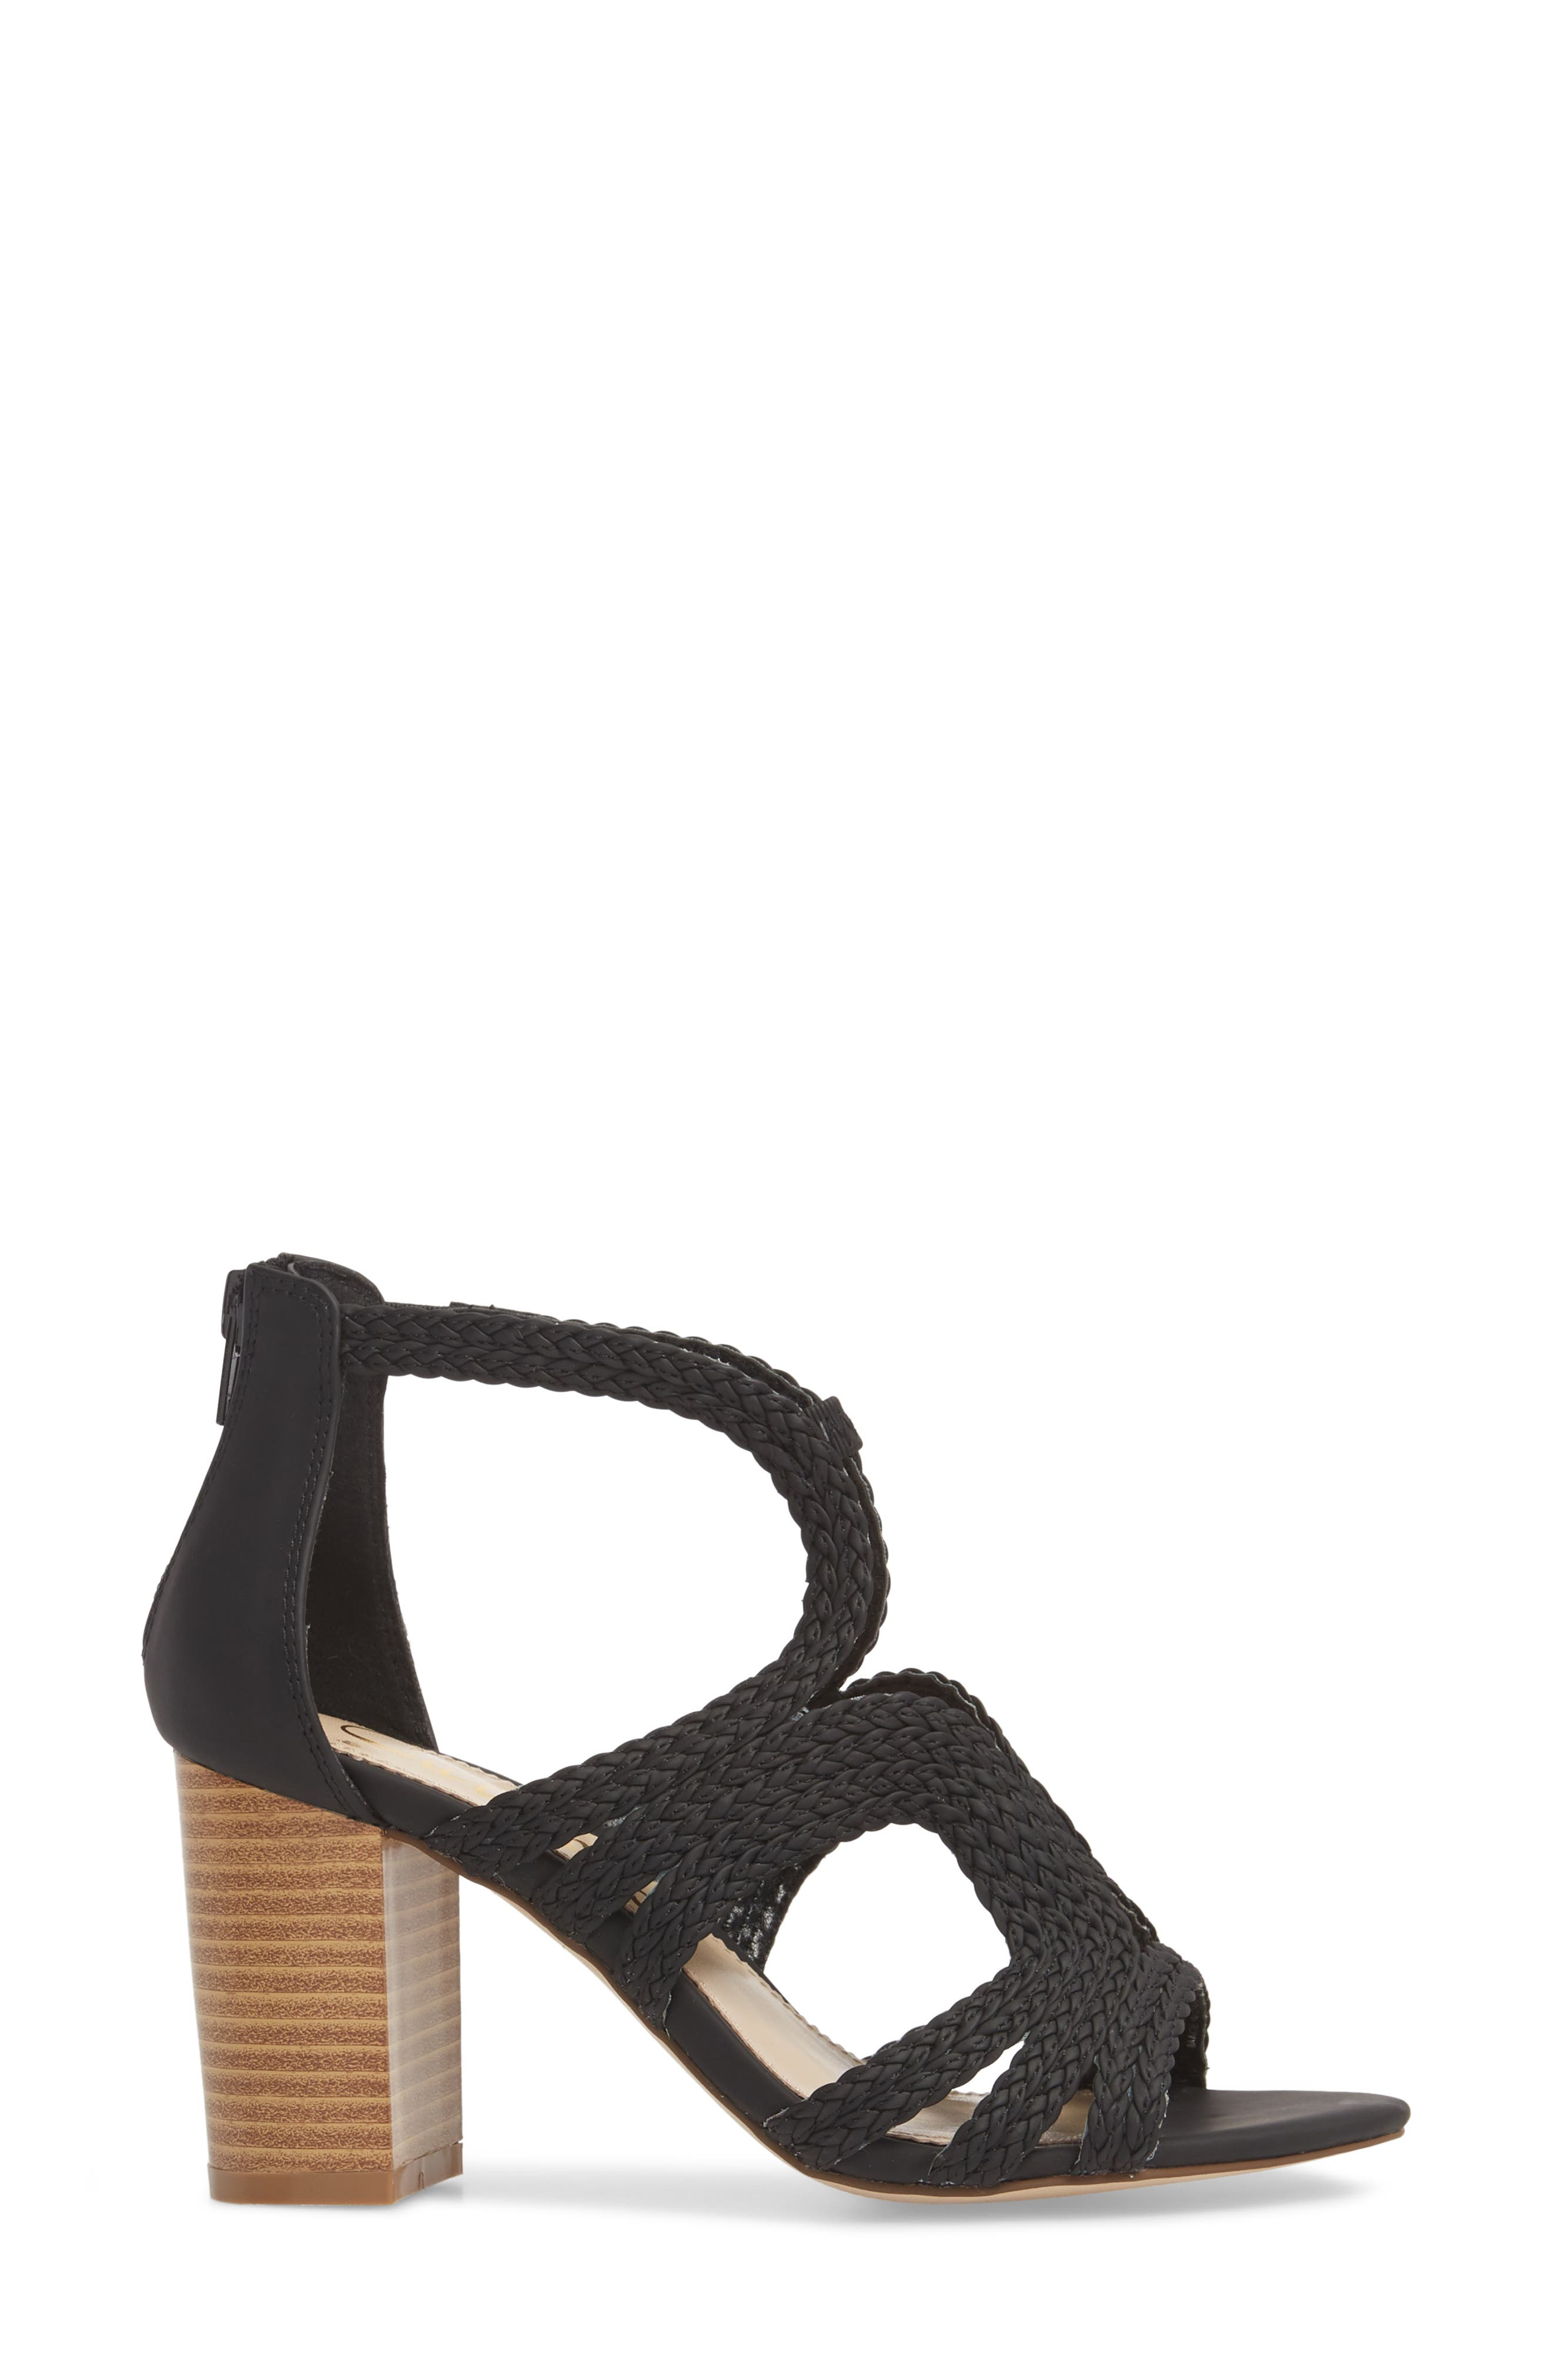 Shindig Block Heel Sandal,                             Alternate thumbnail 3, color,                             Black Fabric